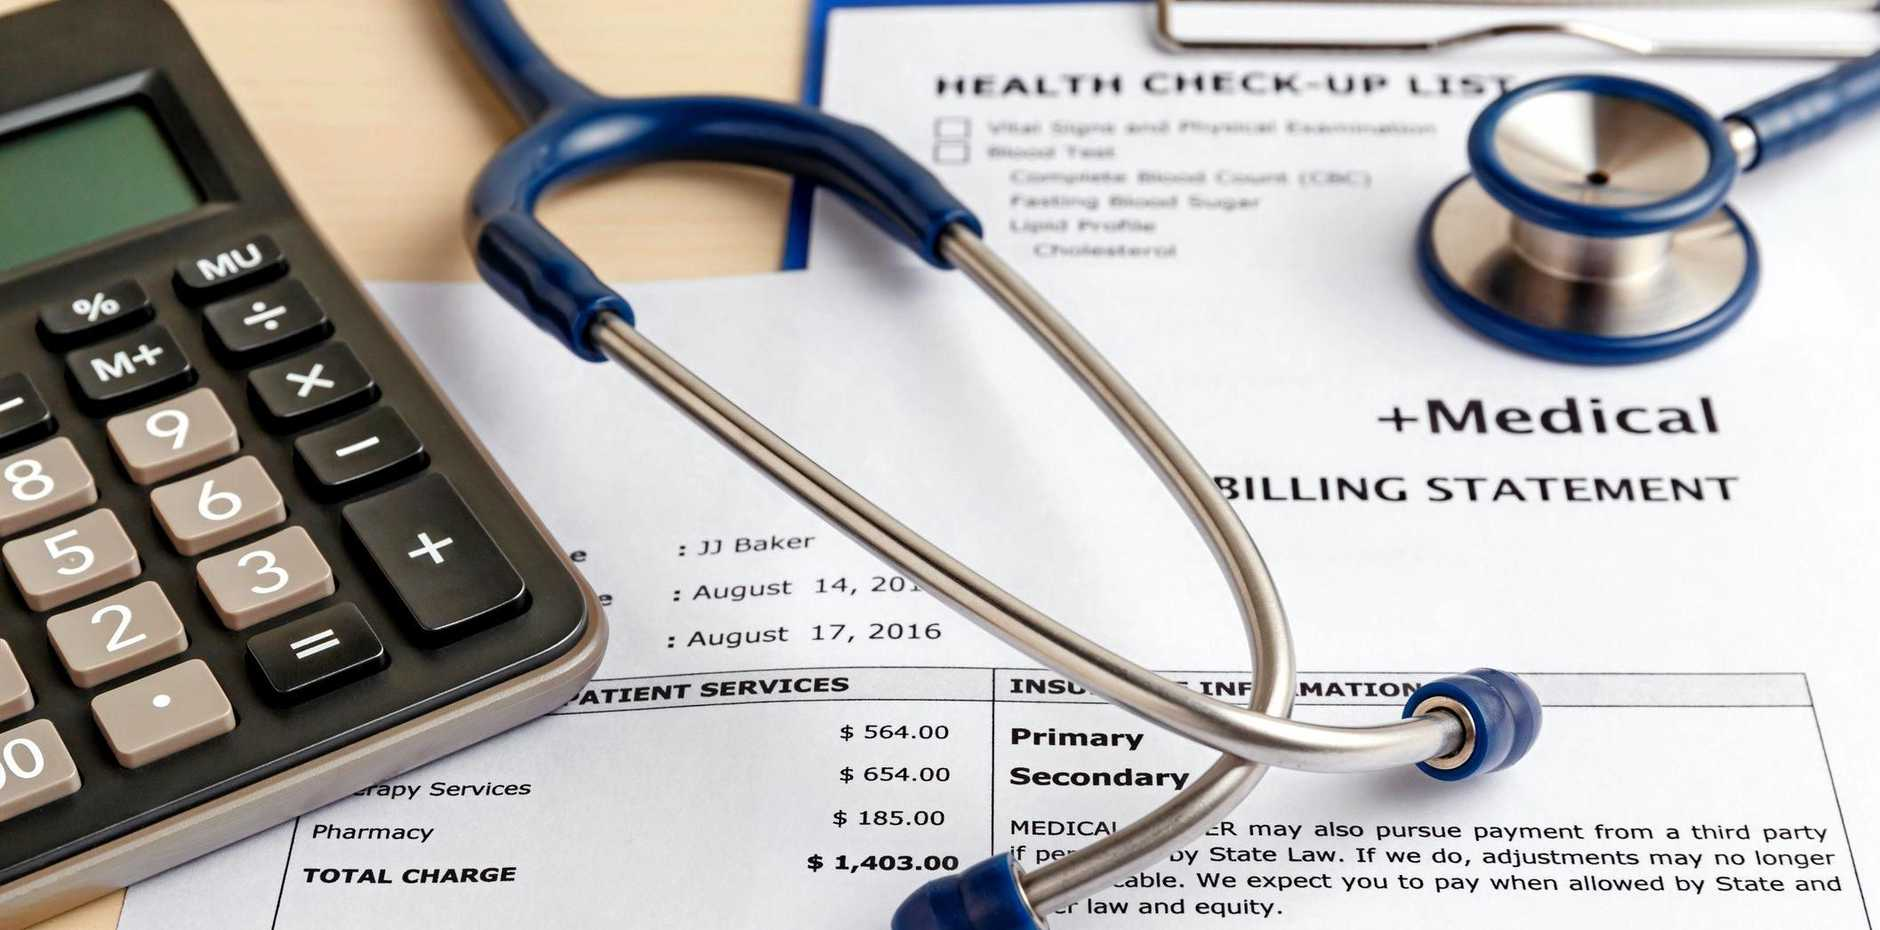 GOOD HEALTH: It's wise to regularly review and revise your health insurance cover.